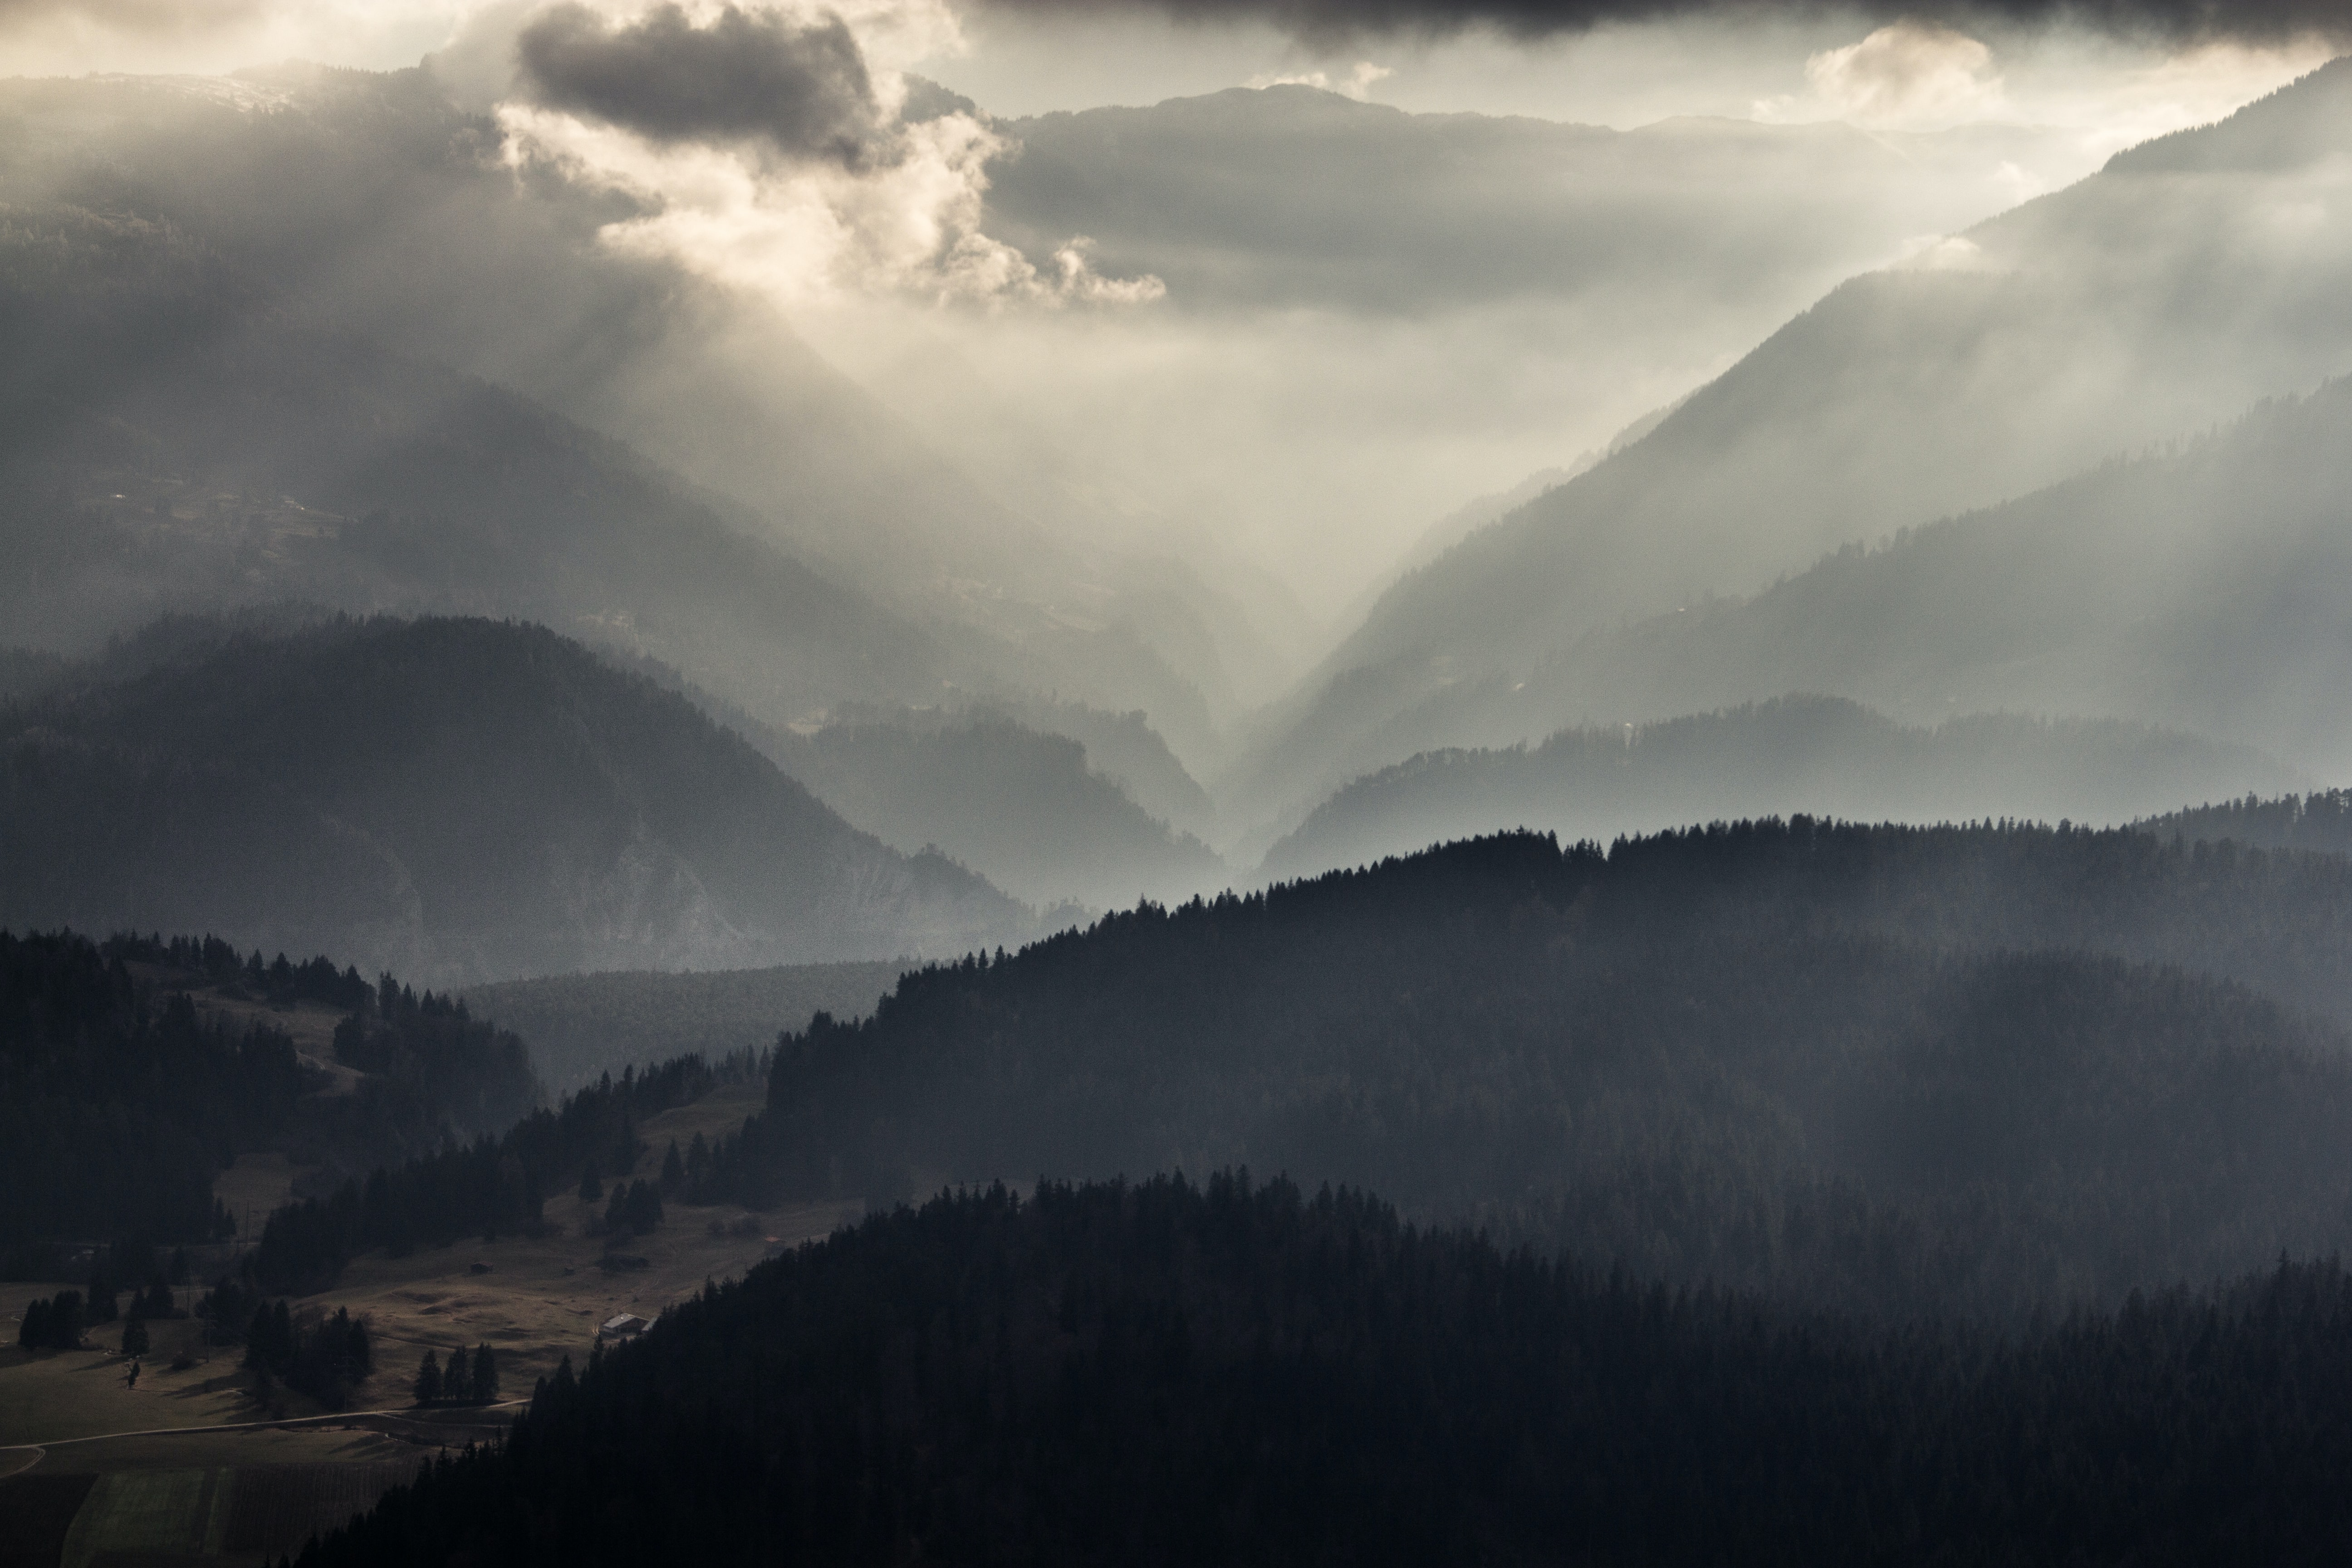 Sun breaking through clouds over a wooded valley